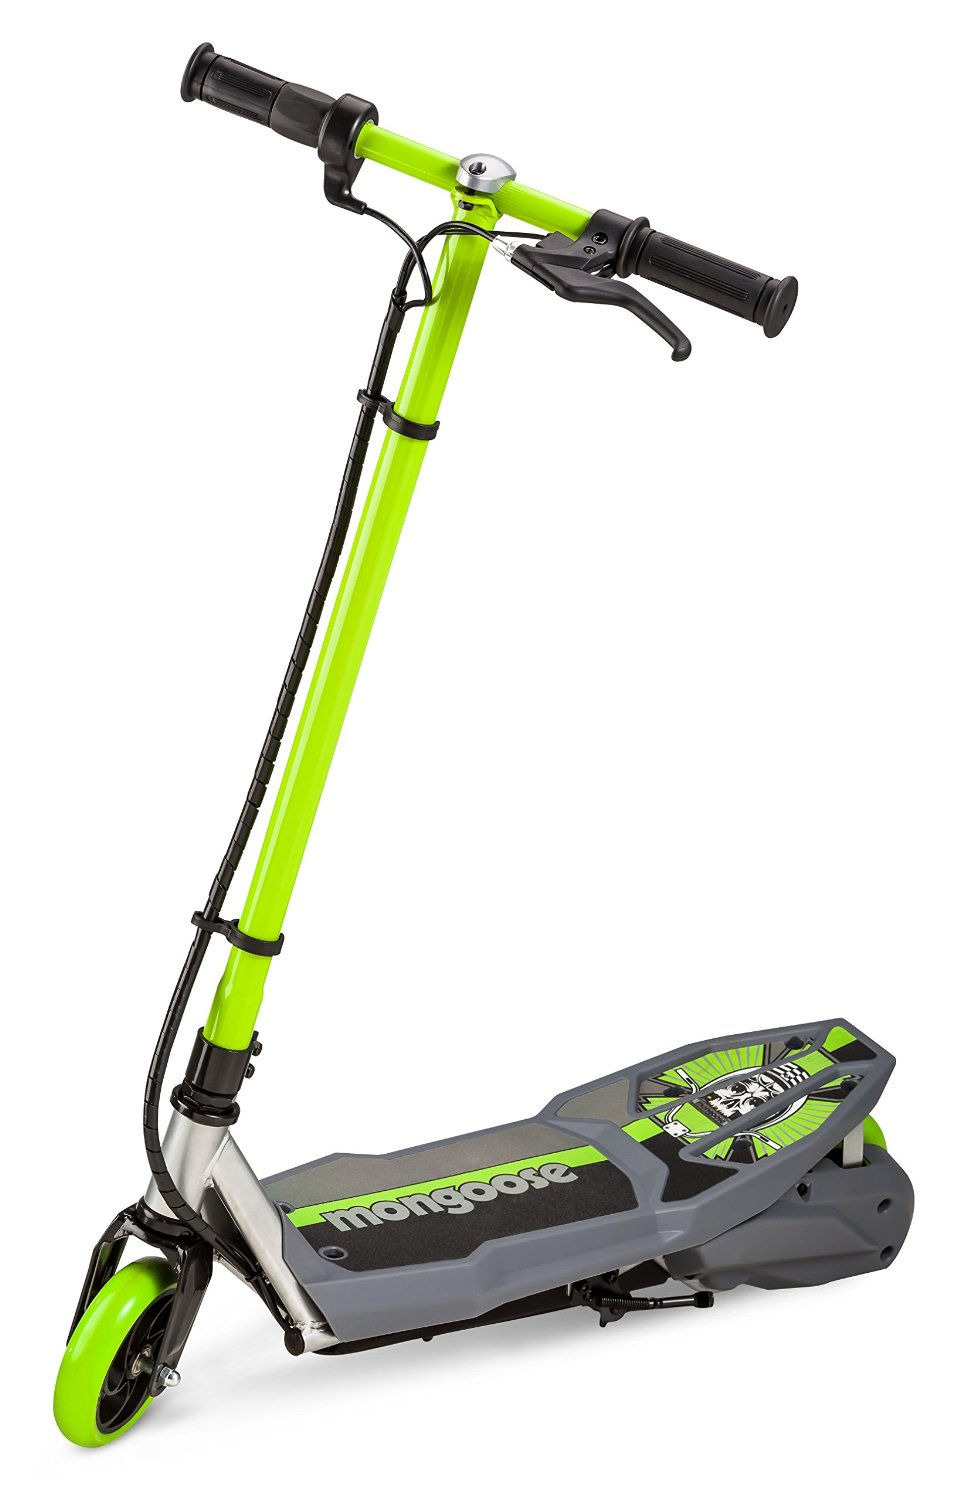 10 Best Hairstyles For 13 Year Olds: Top 10 Best Electric Scooters That Are Fun To Ride